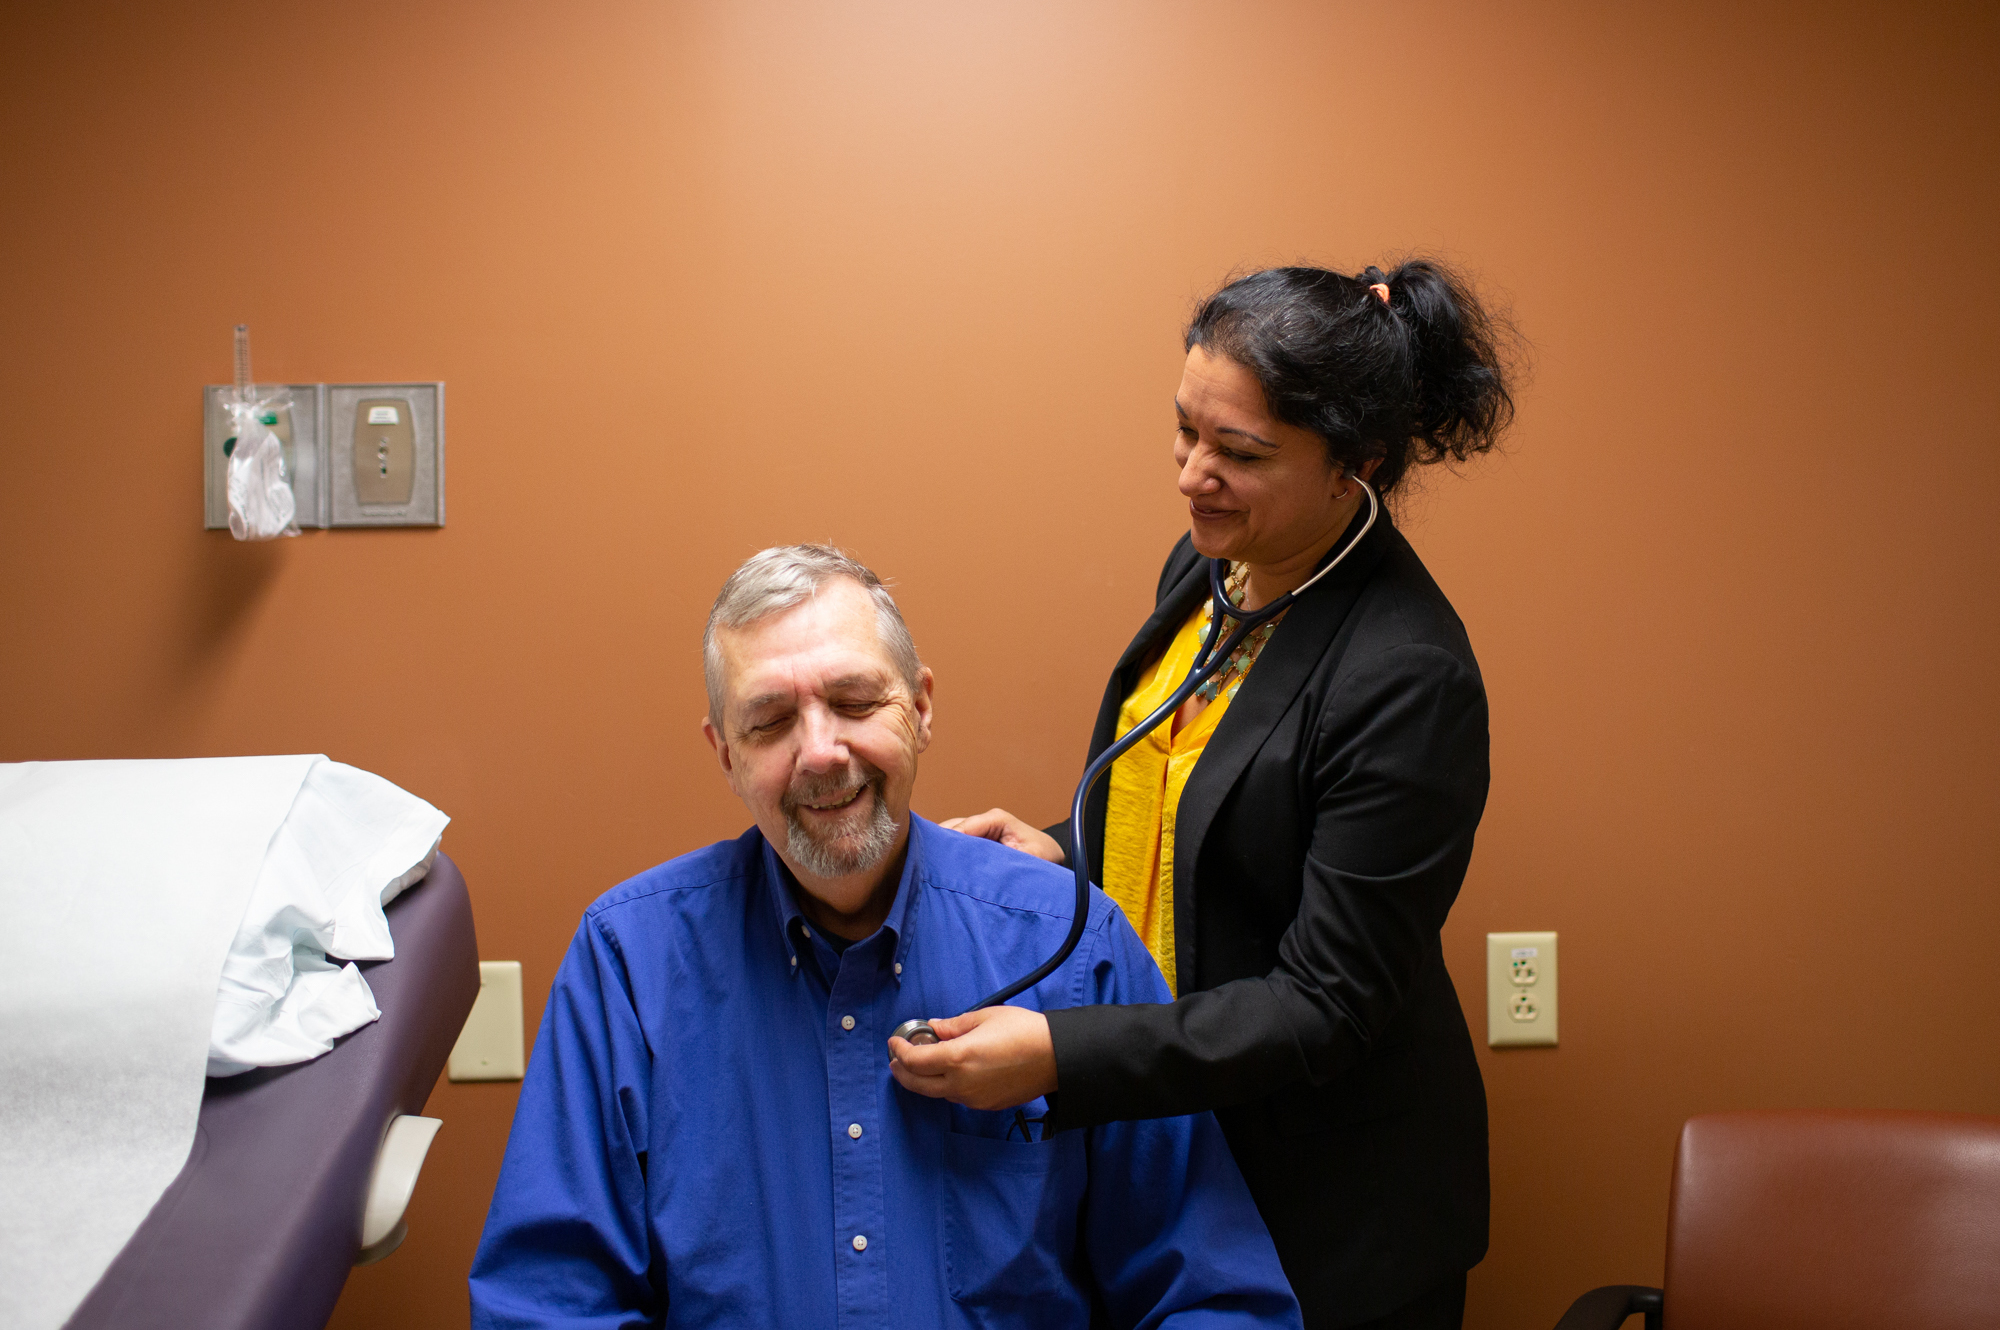 A Cancer Care Approach Tailored To The Elderly May Have Better Results